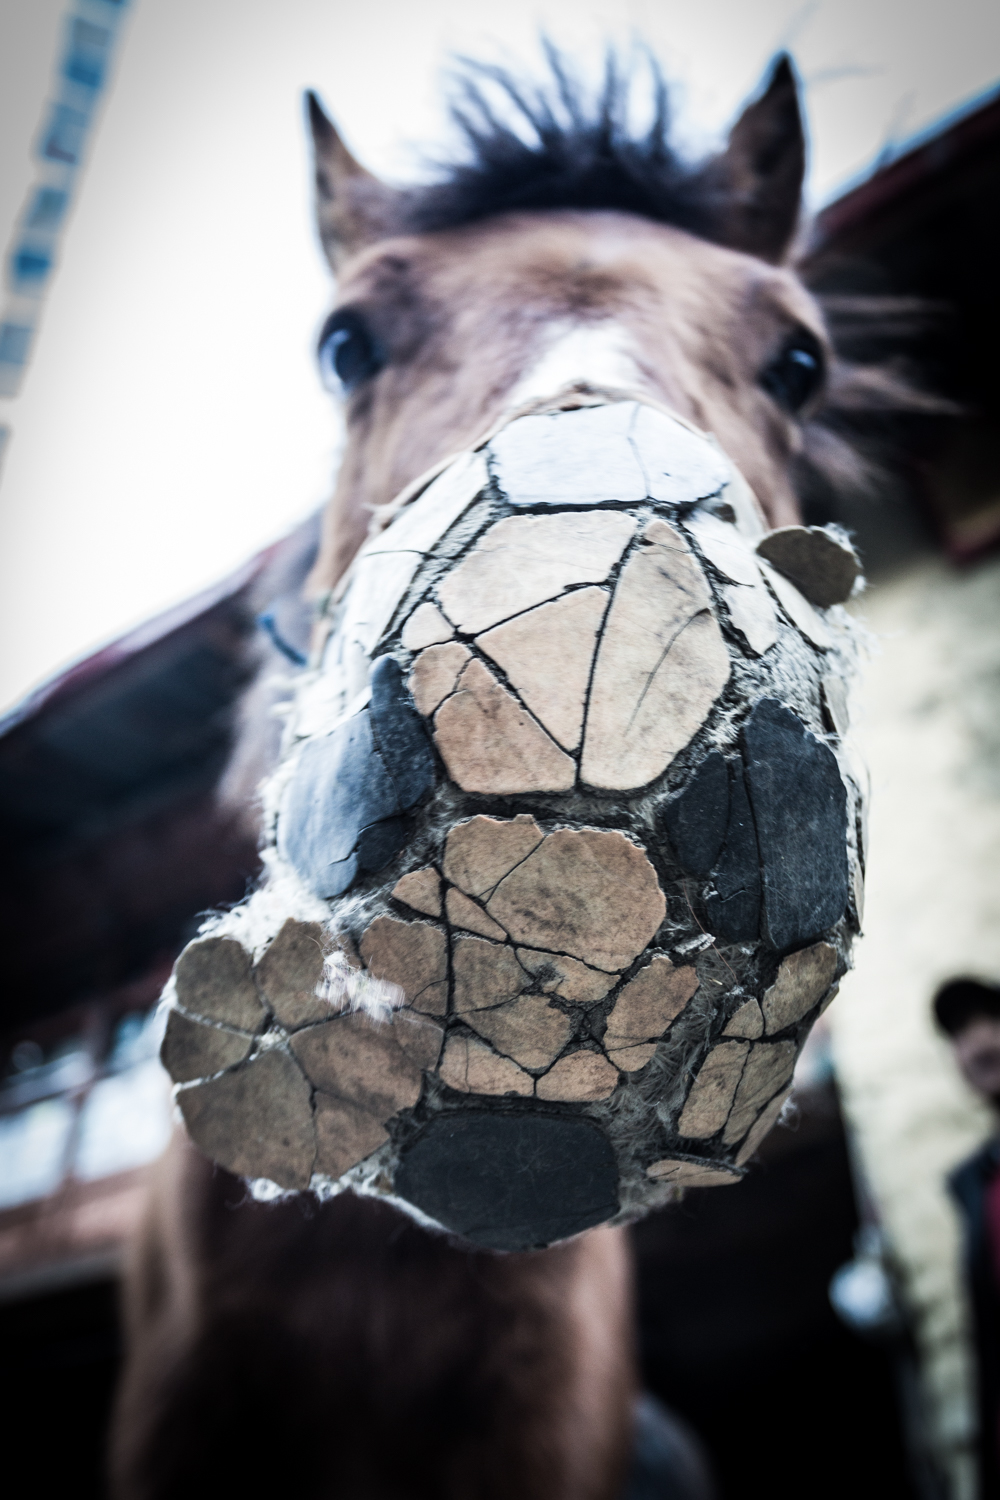 Villagers in Tsum Valley use old soccer balls  as horsefeeders.